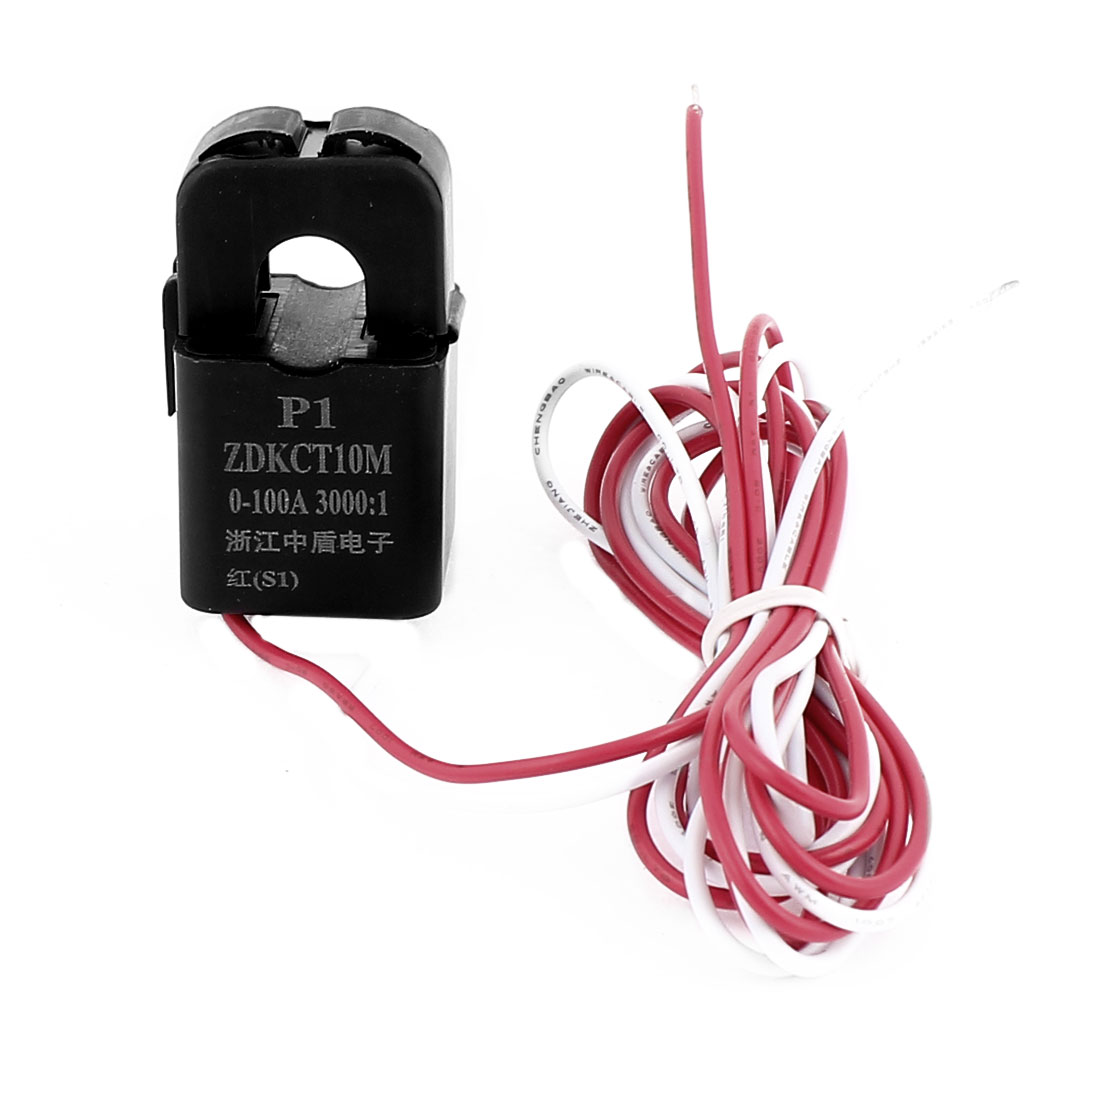 ZDKCT010FM 0-100A 3000:1 2 Wire Precision AC Micro Current Transformer Sensor